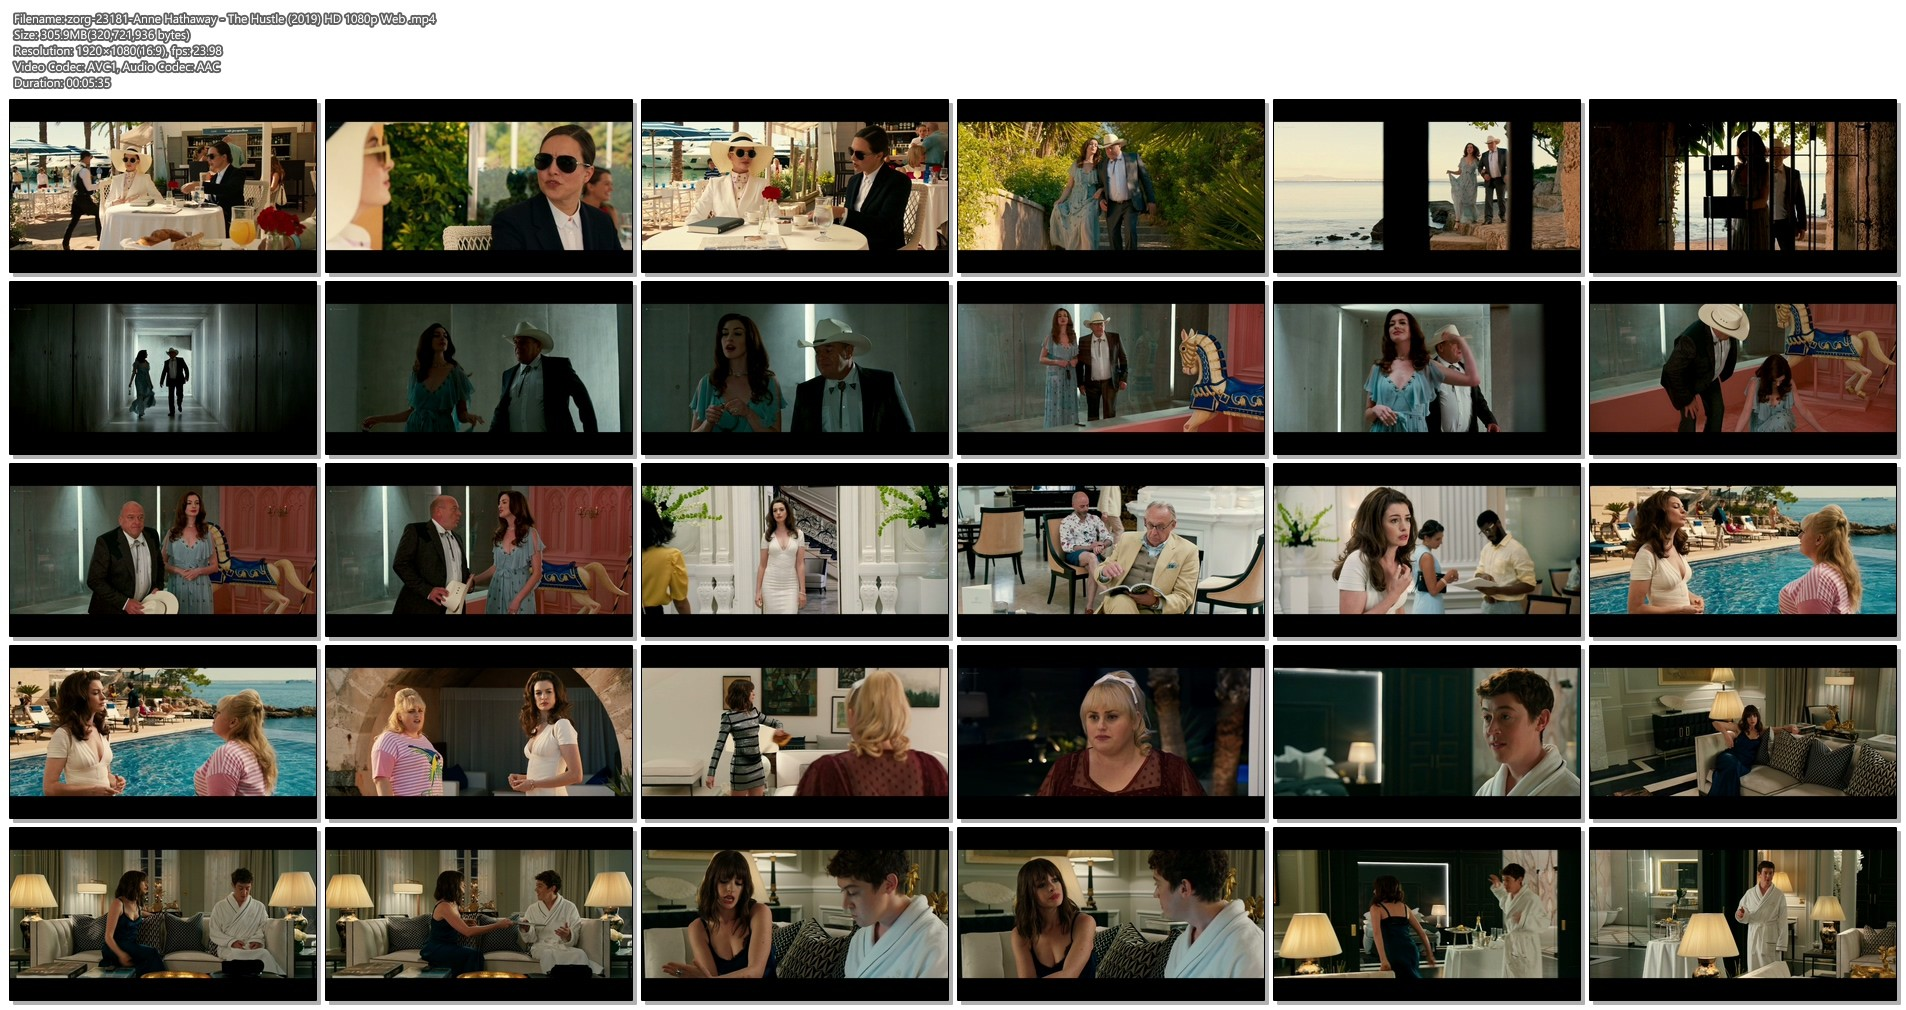 Anne Hathaway hot and sexy - The Hustle (2019) HD 1080p Web (1)